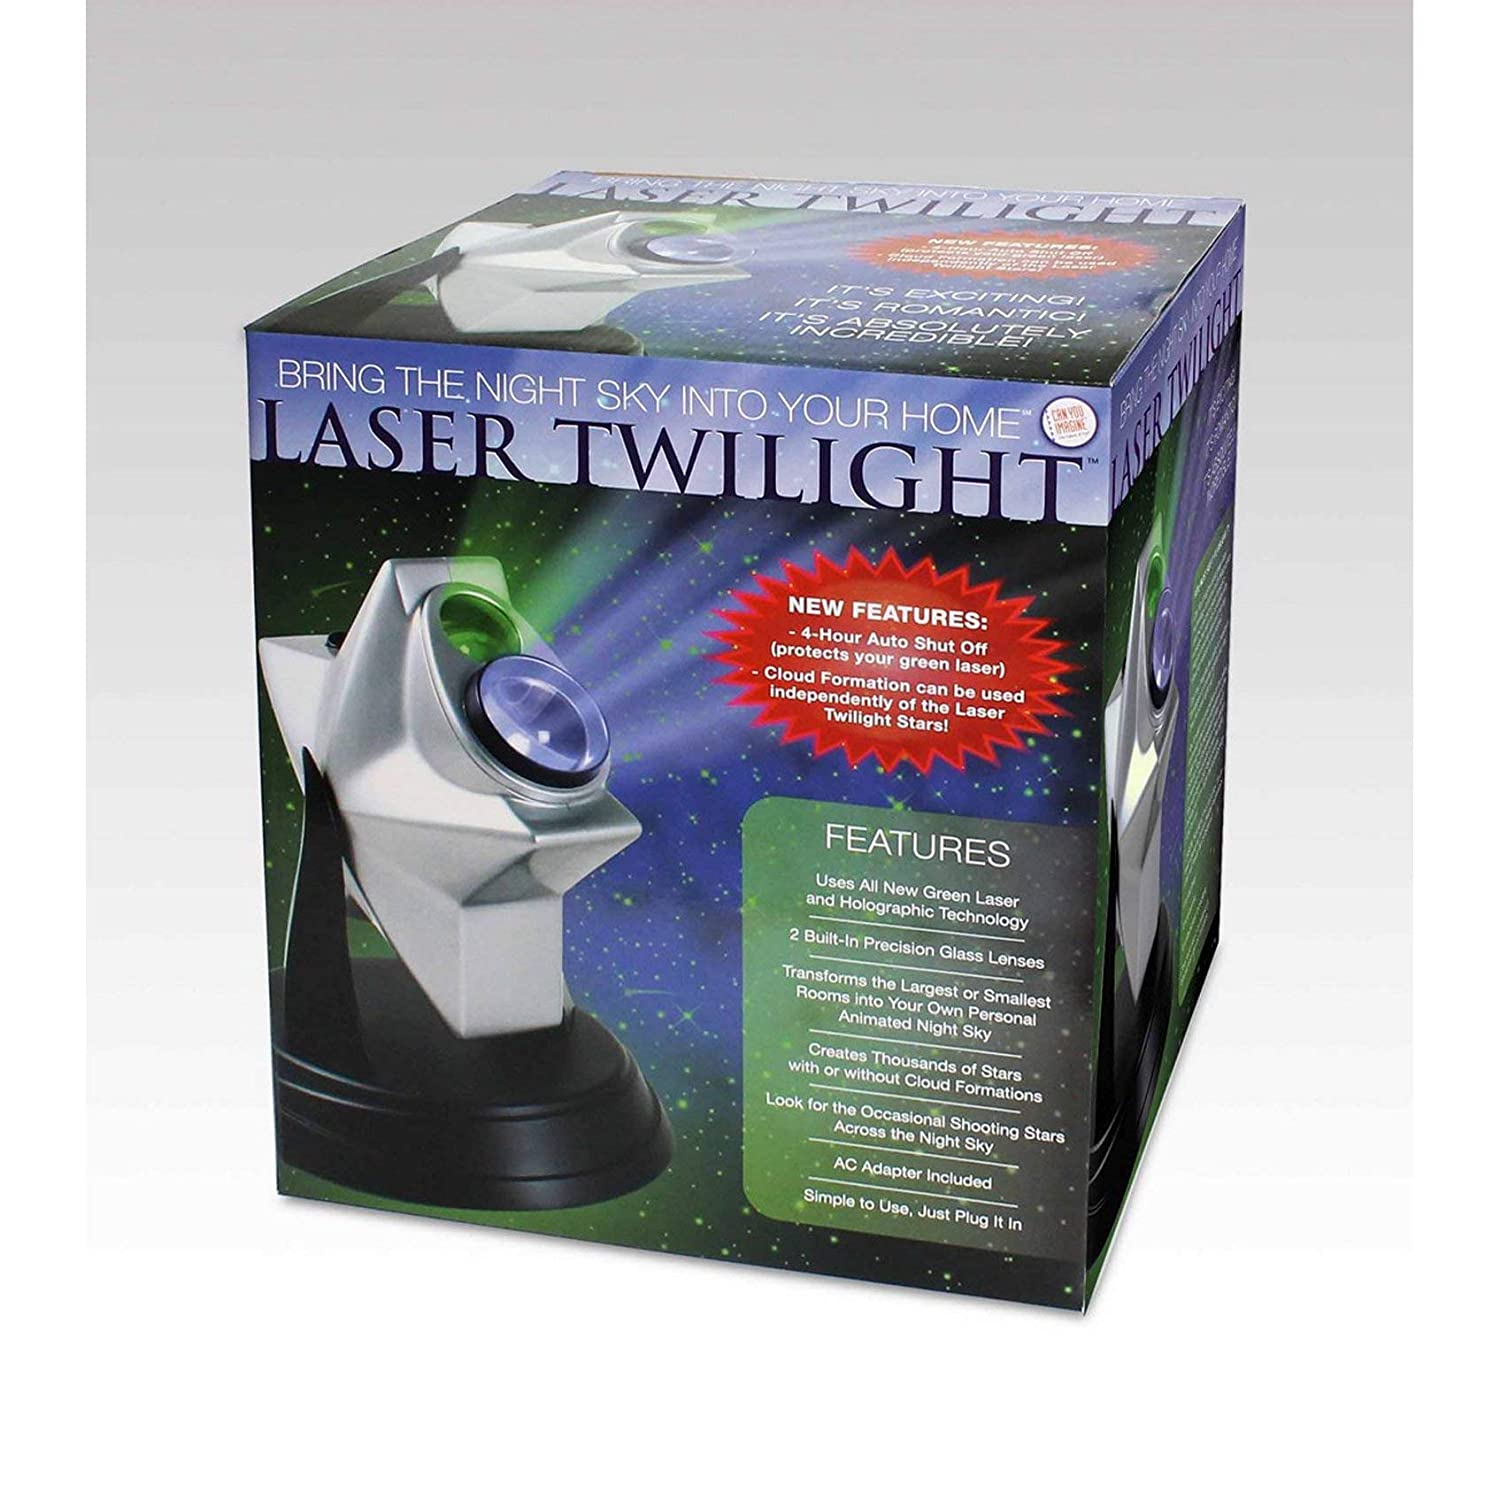 Can You Imagine Laser Twilight Projector Toysmith 51060